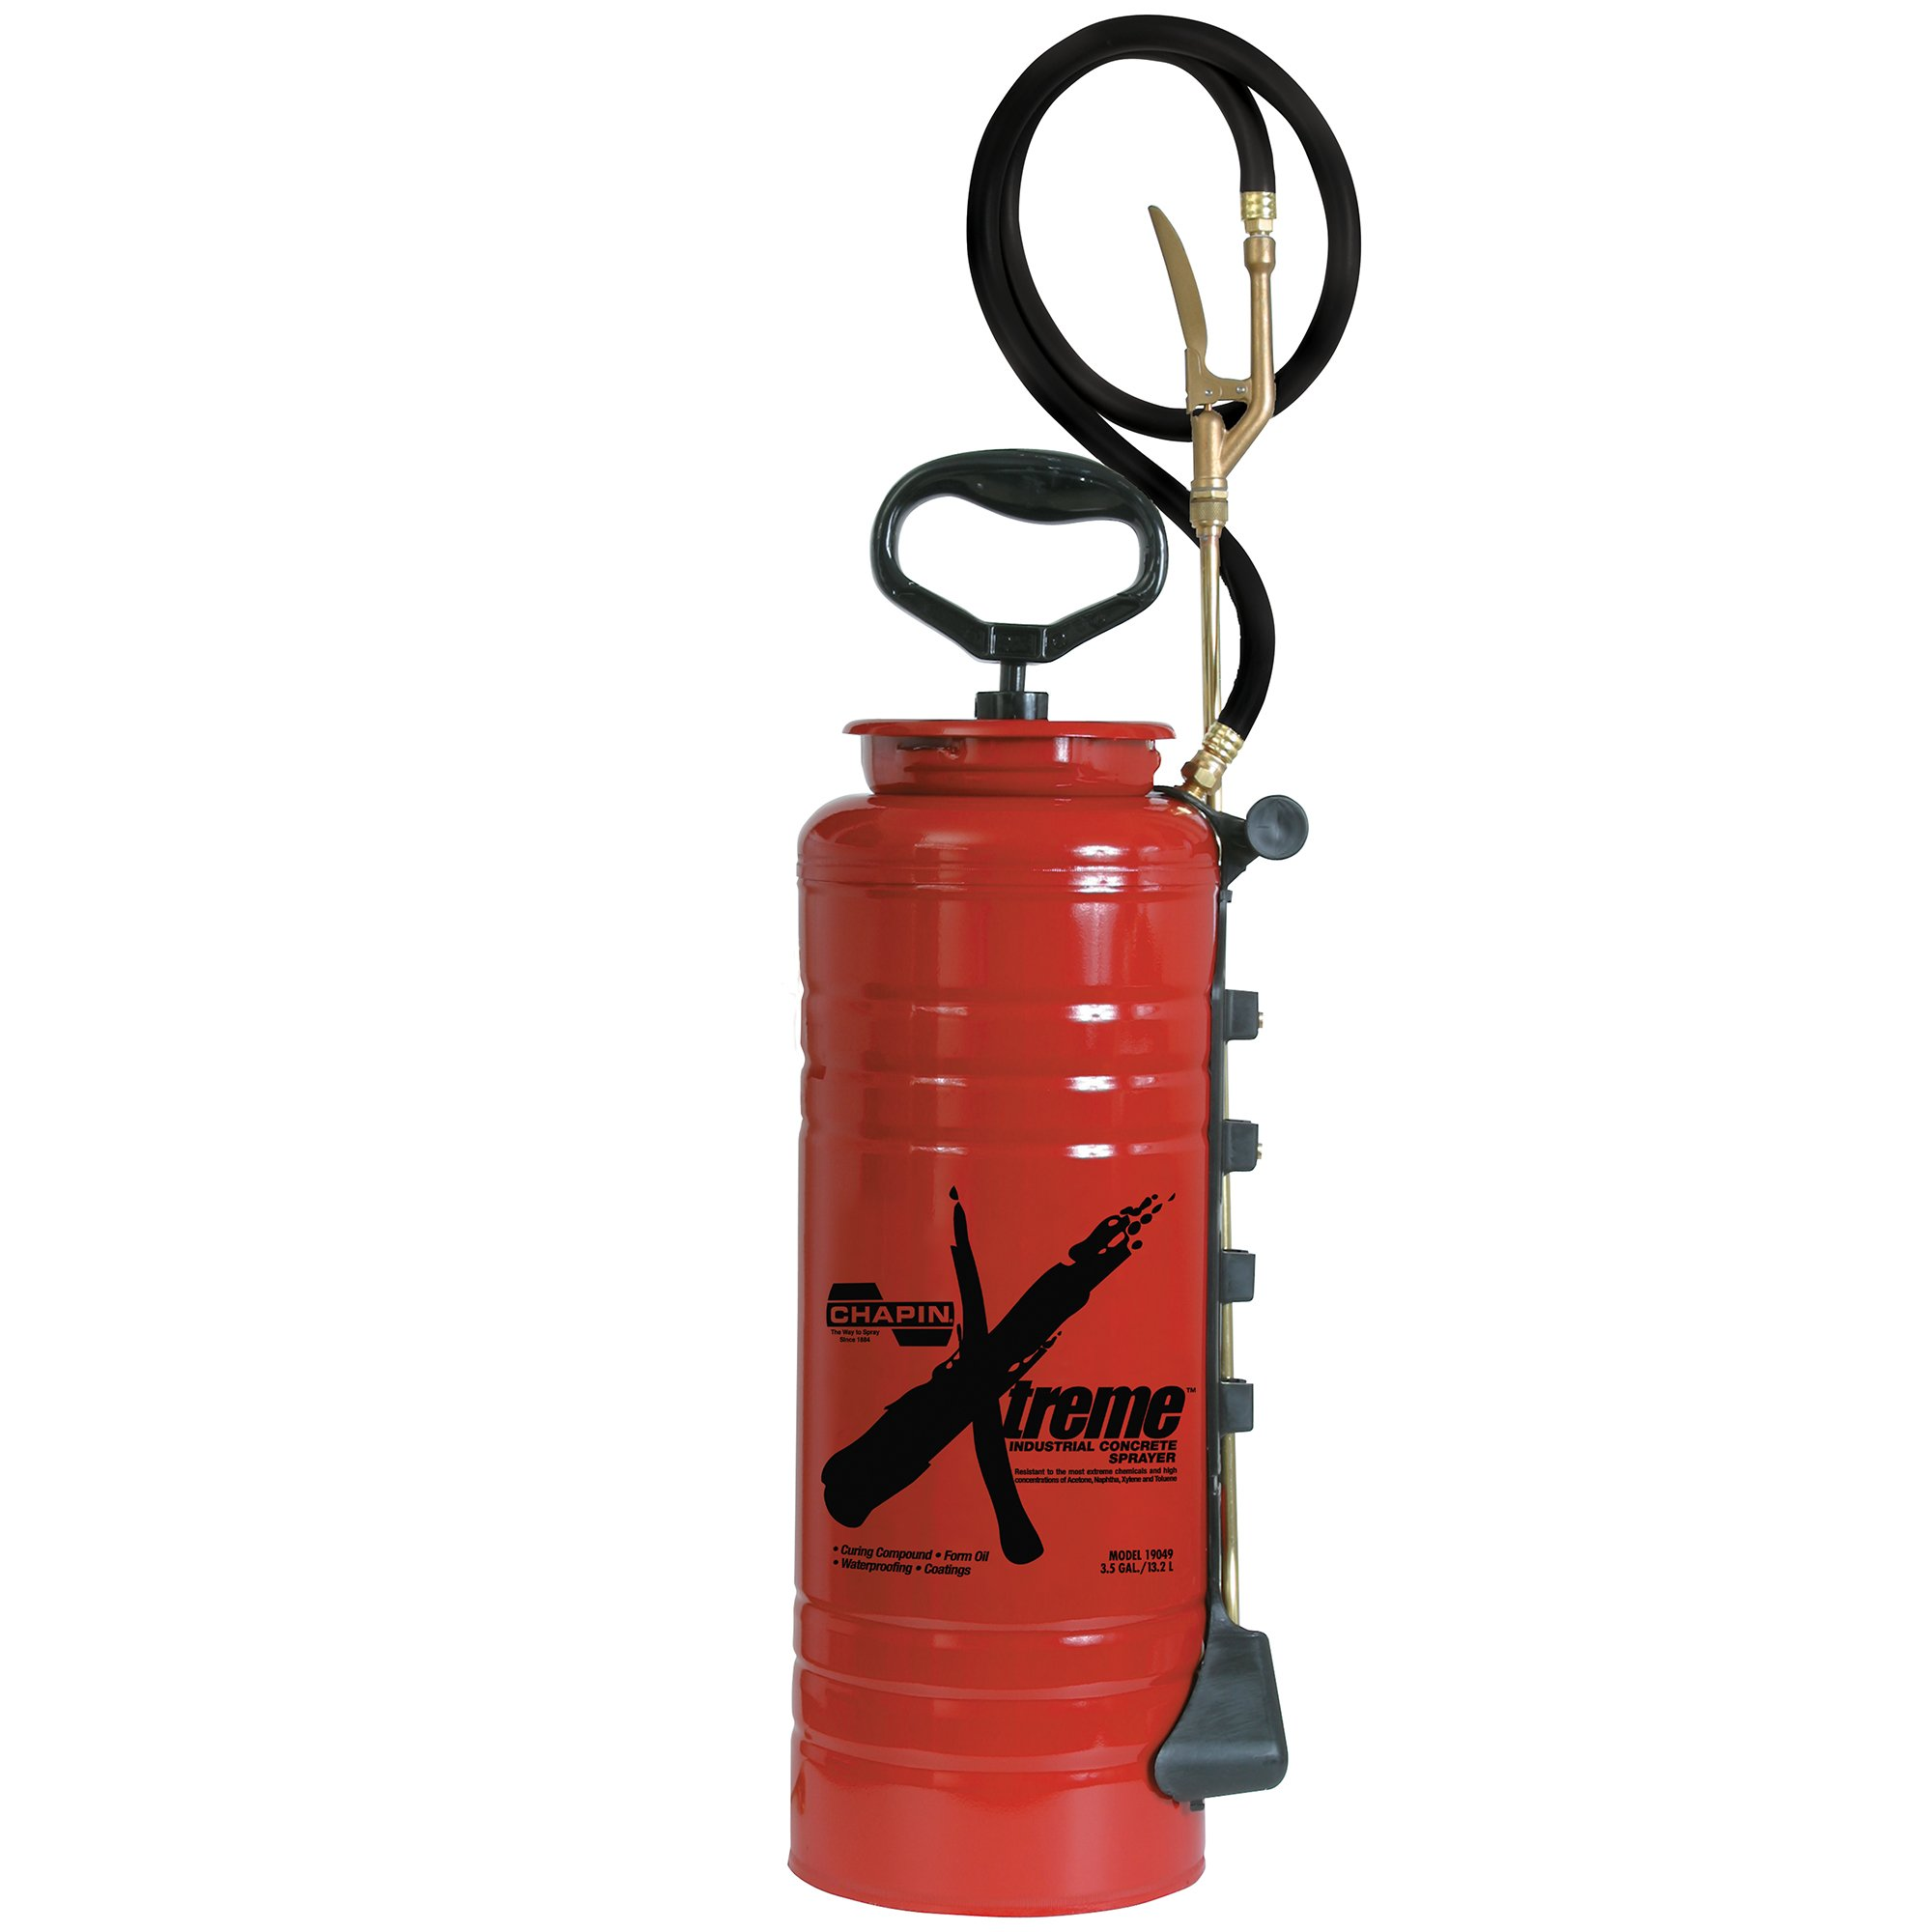 Chapin 19049 Xtreme 3.5 Gallon Industrial Concrete Open Head Sprayer For Curing Compounds, Form Oils, Waterproofing and Coatings by Chapin International